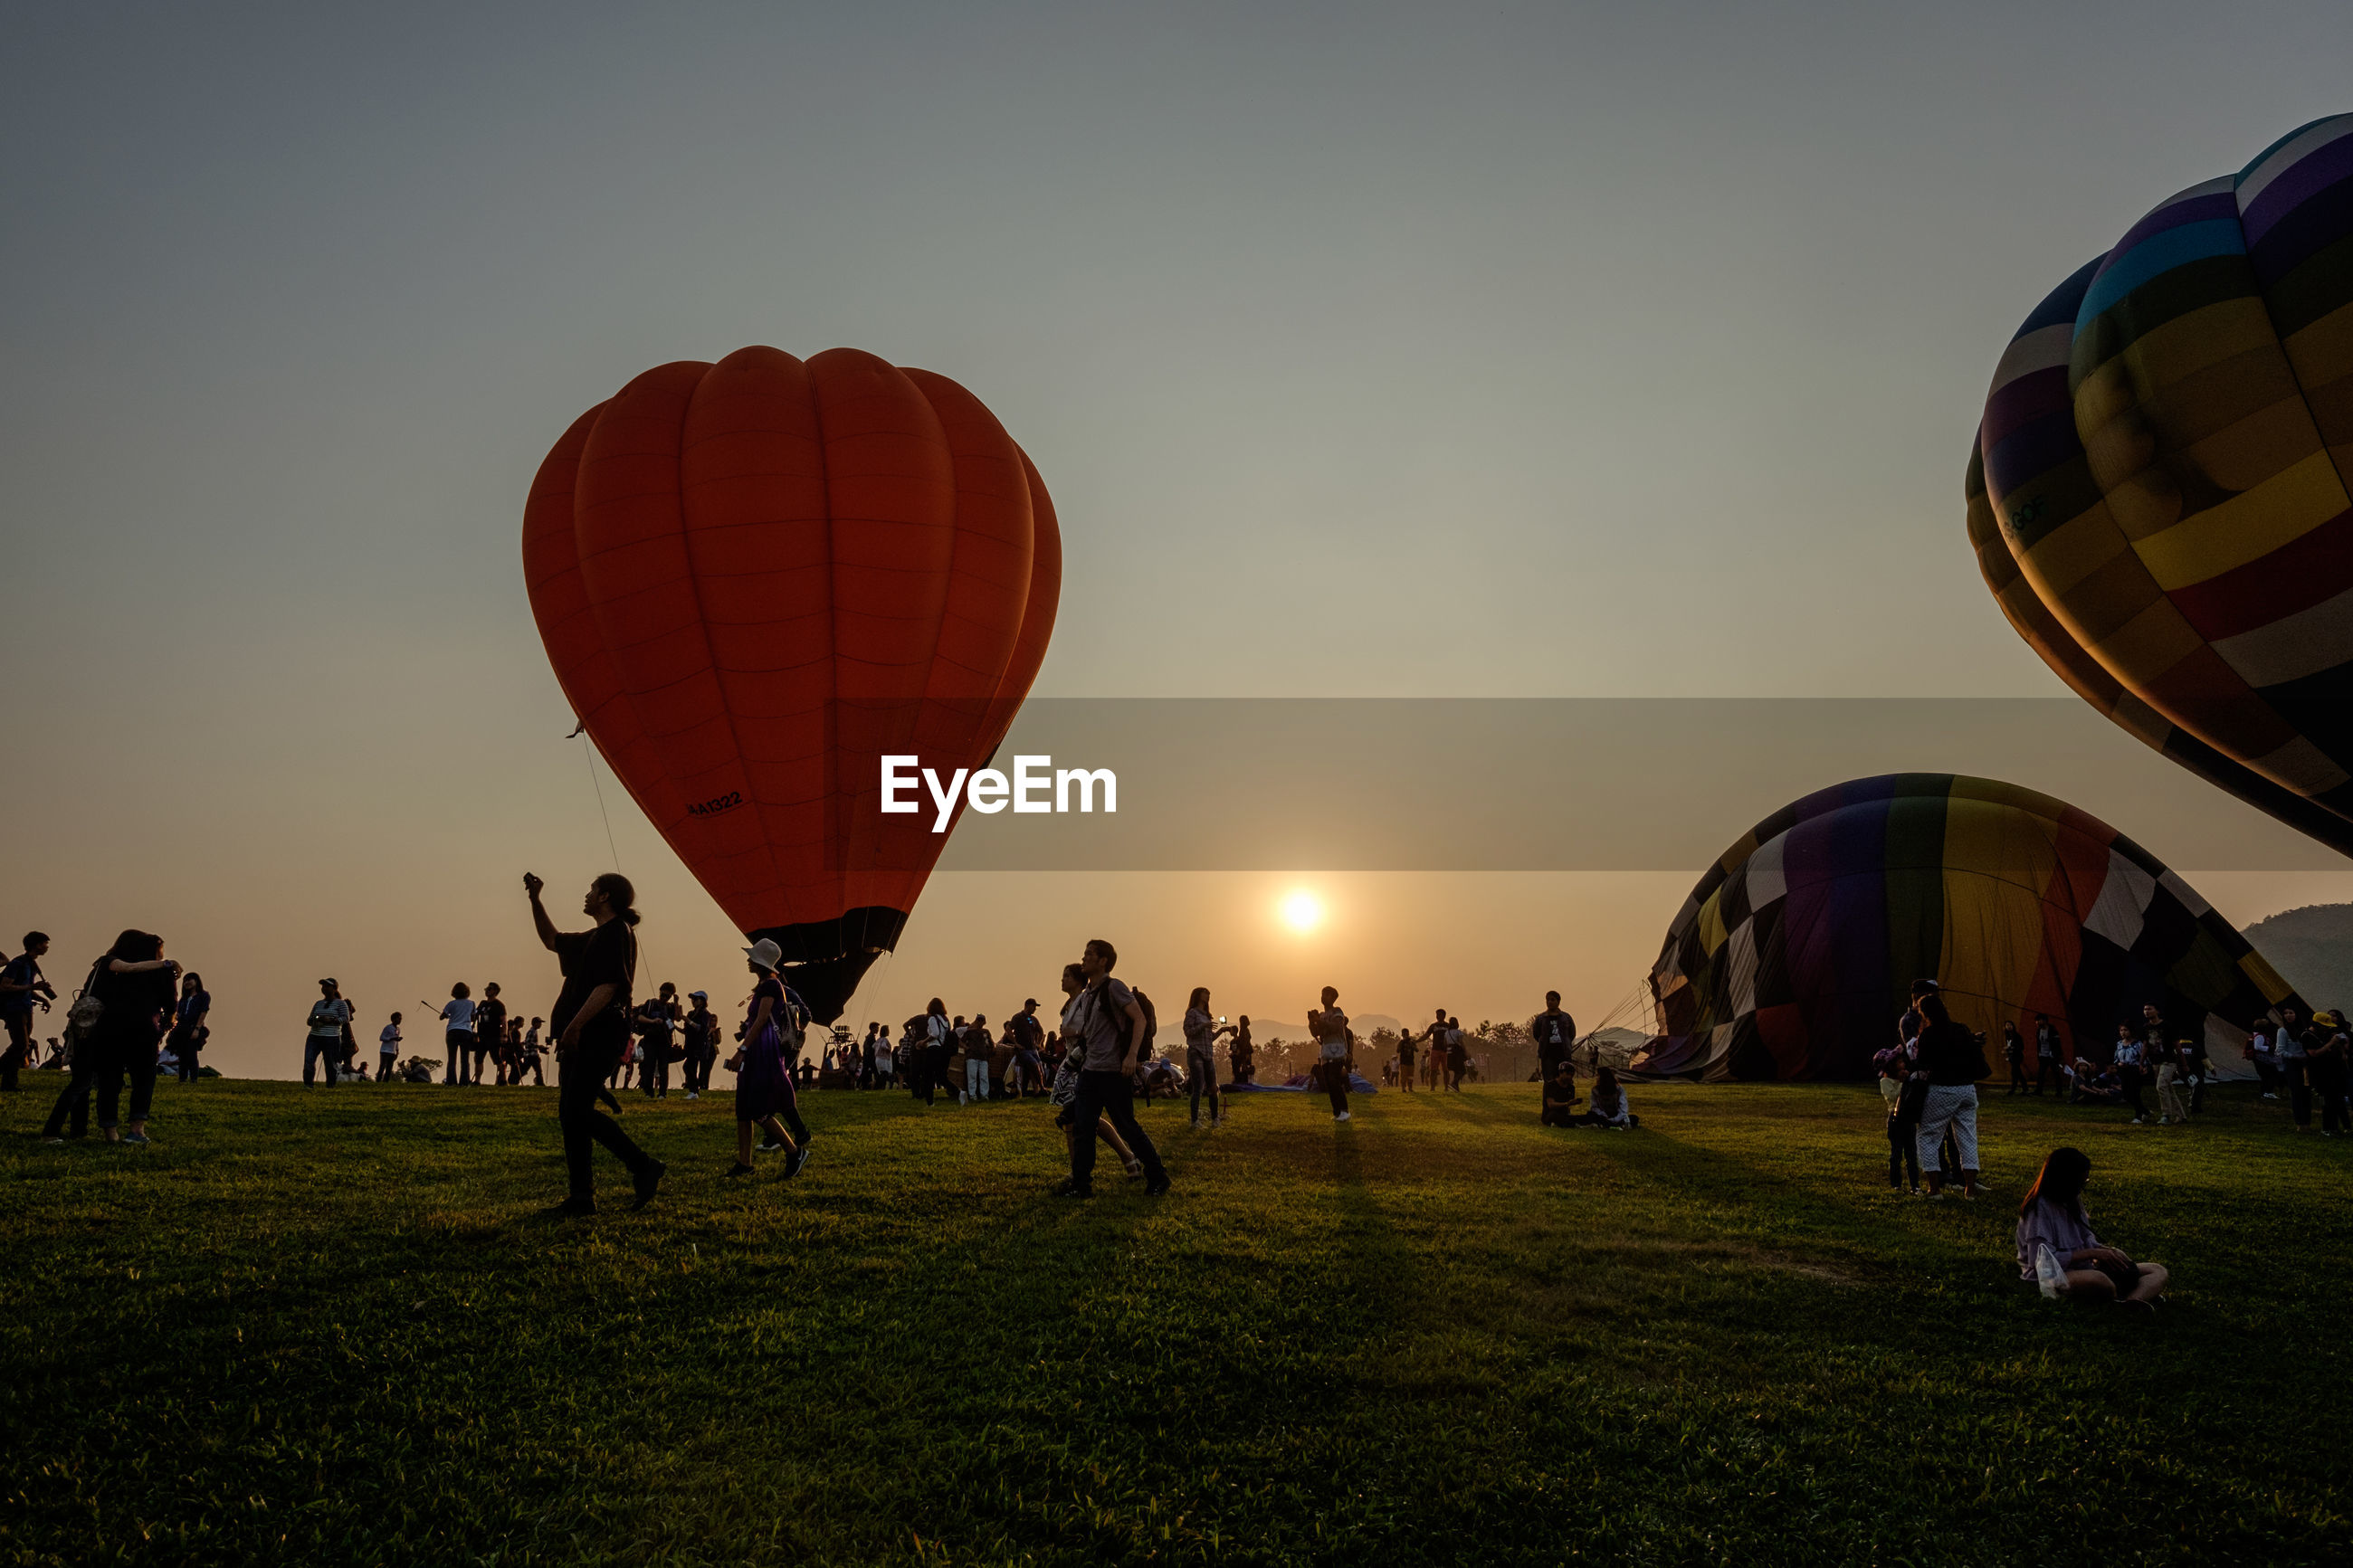 GROUP OF PEOPLE ON HOT AIR BALLOONS